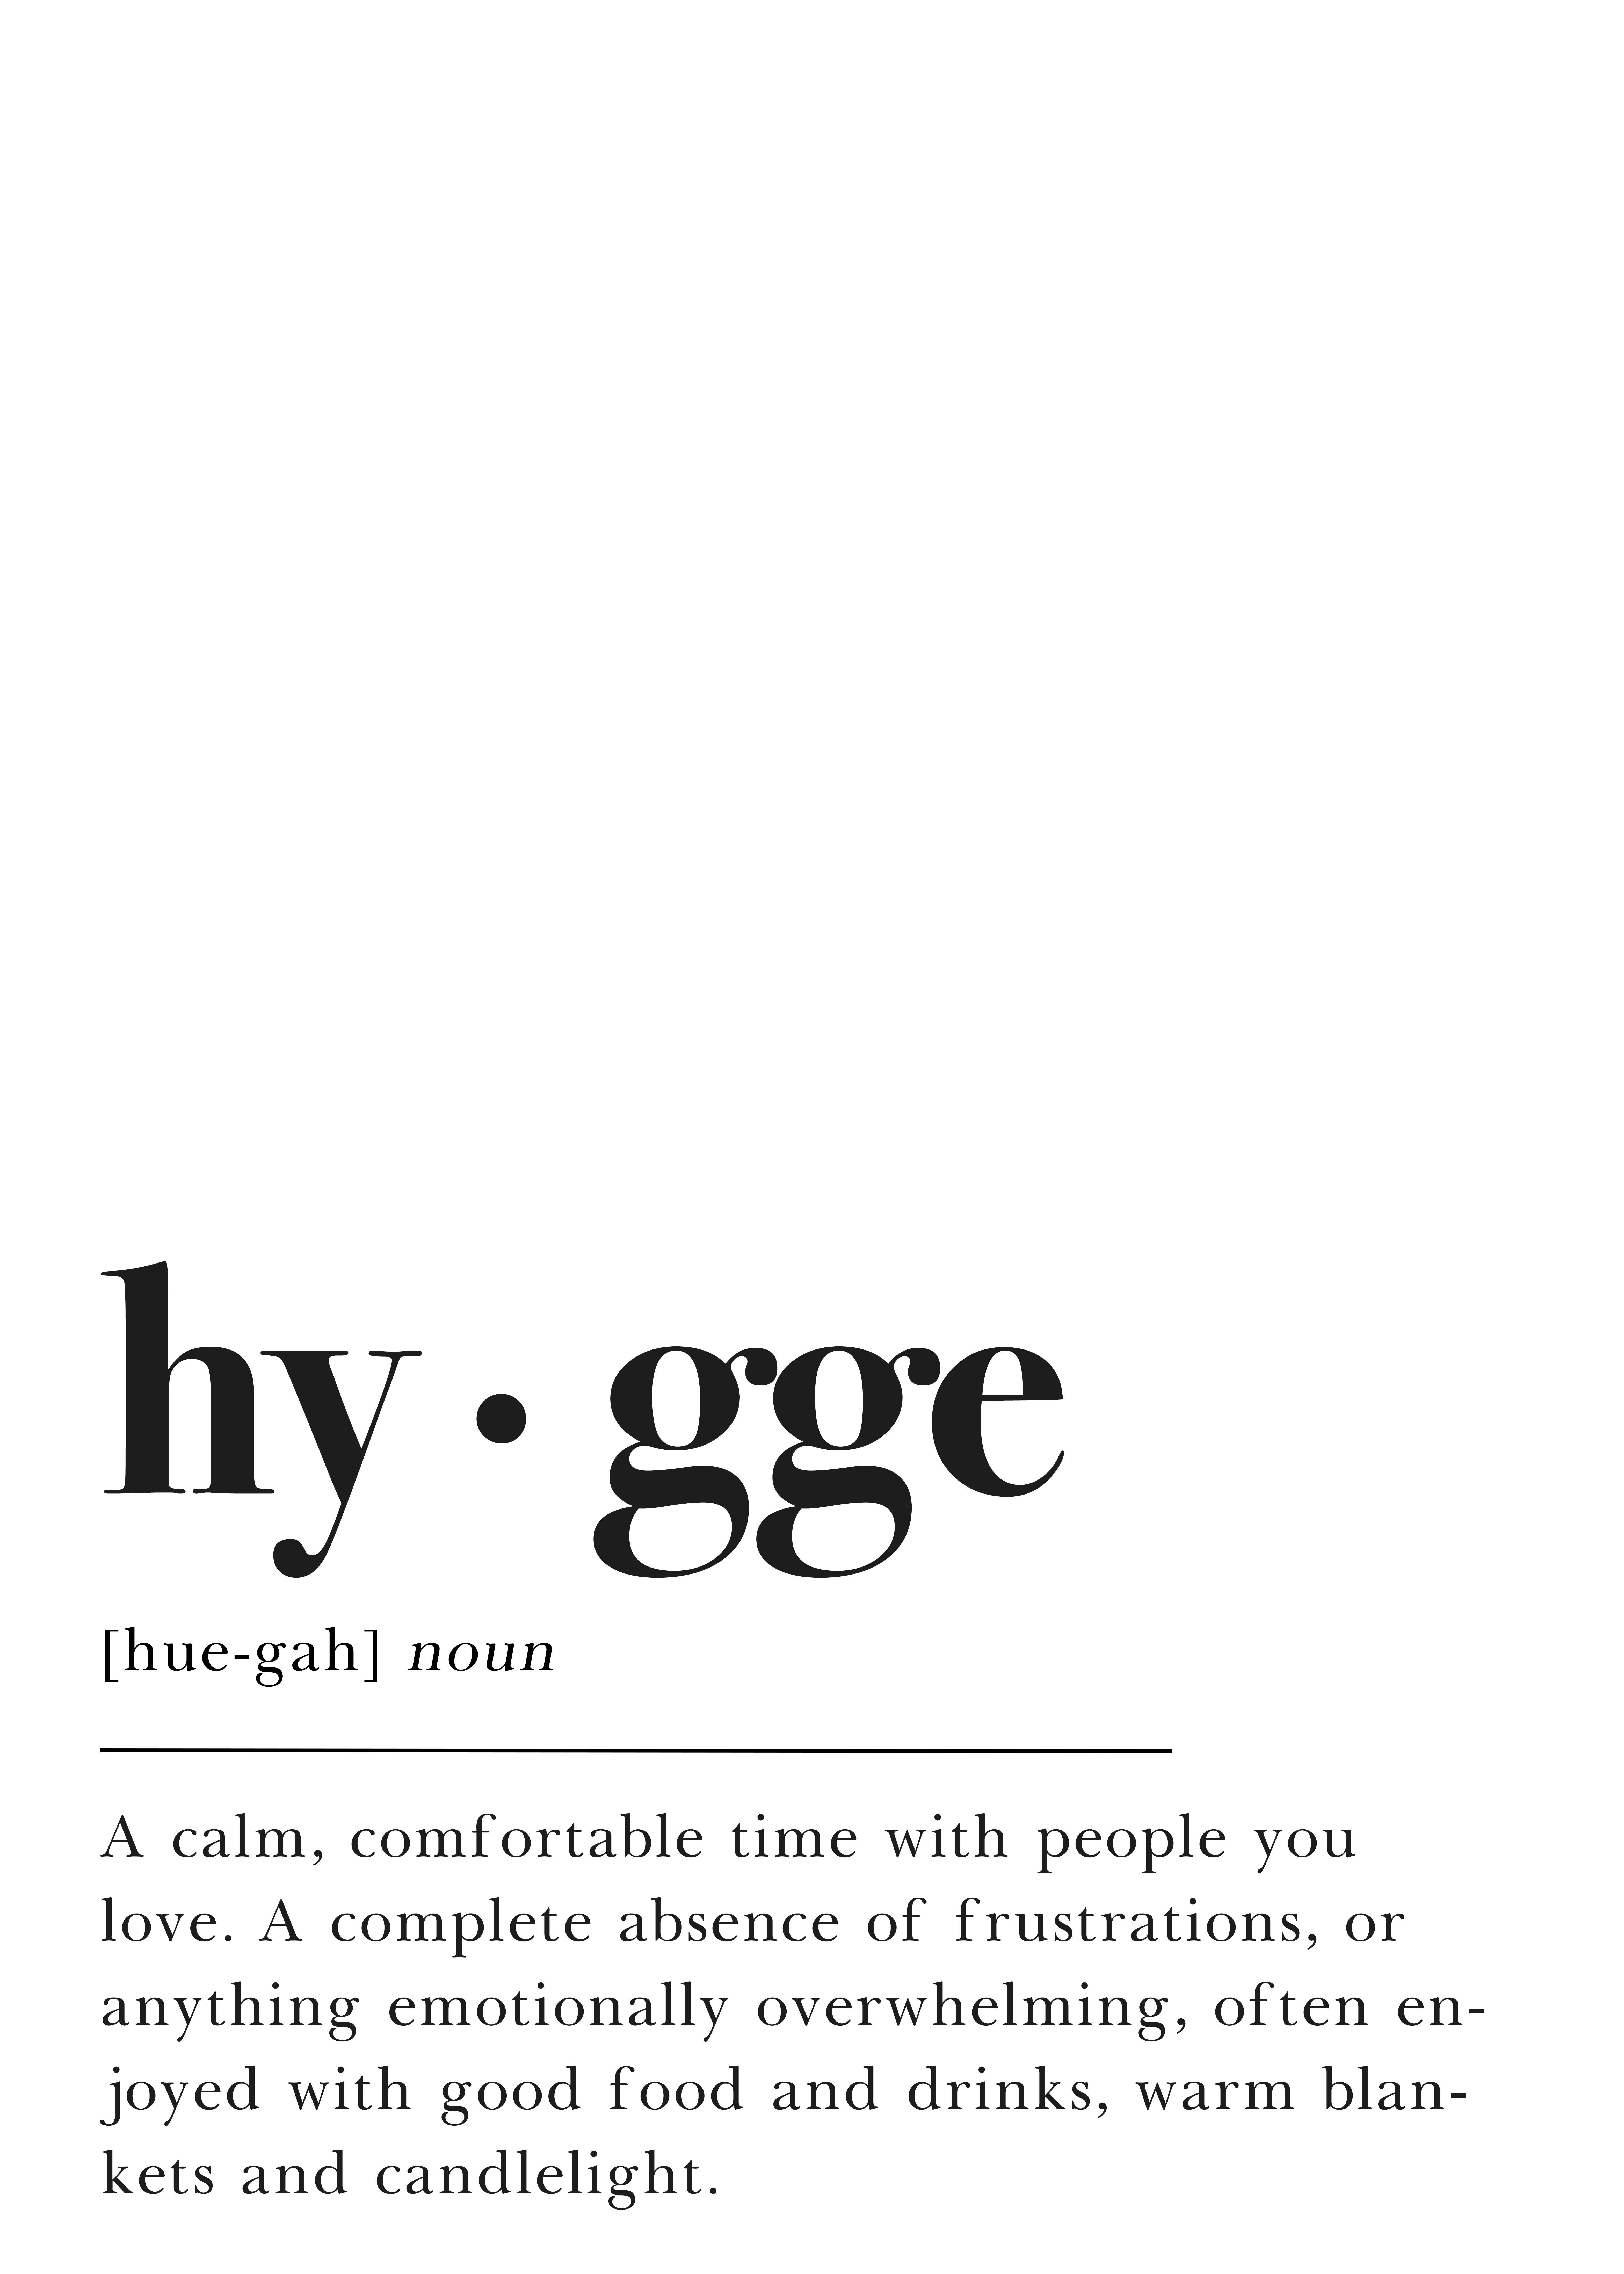 Hygge Definition Printable Wall Art Decoration Gift Living Hygge Style Scandinavian Interi In 2020 Aesthetic Words Uncommon Words Words